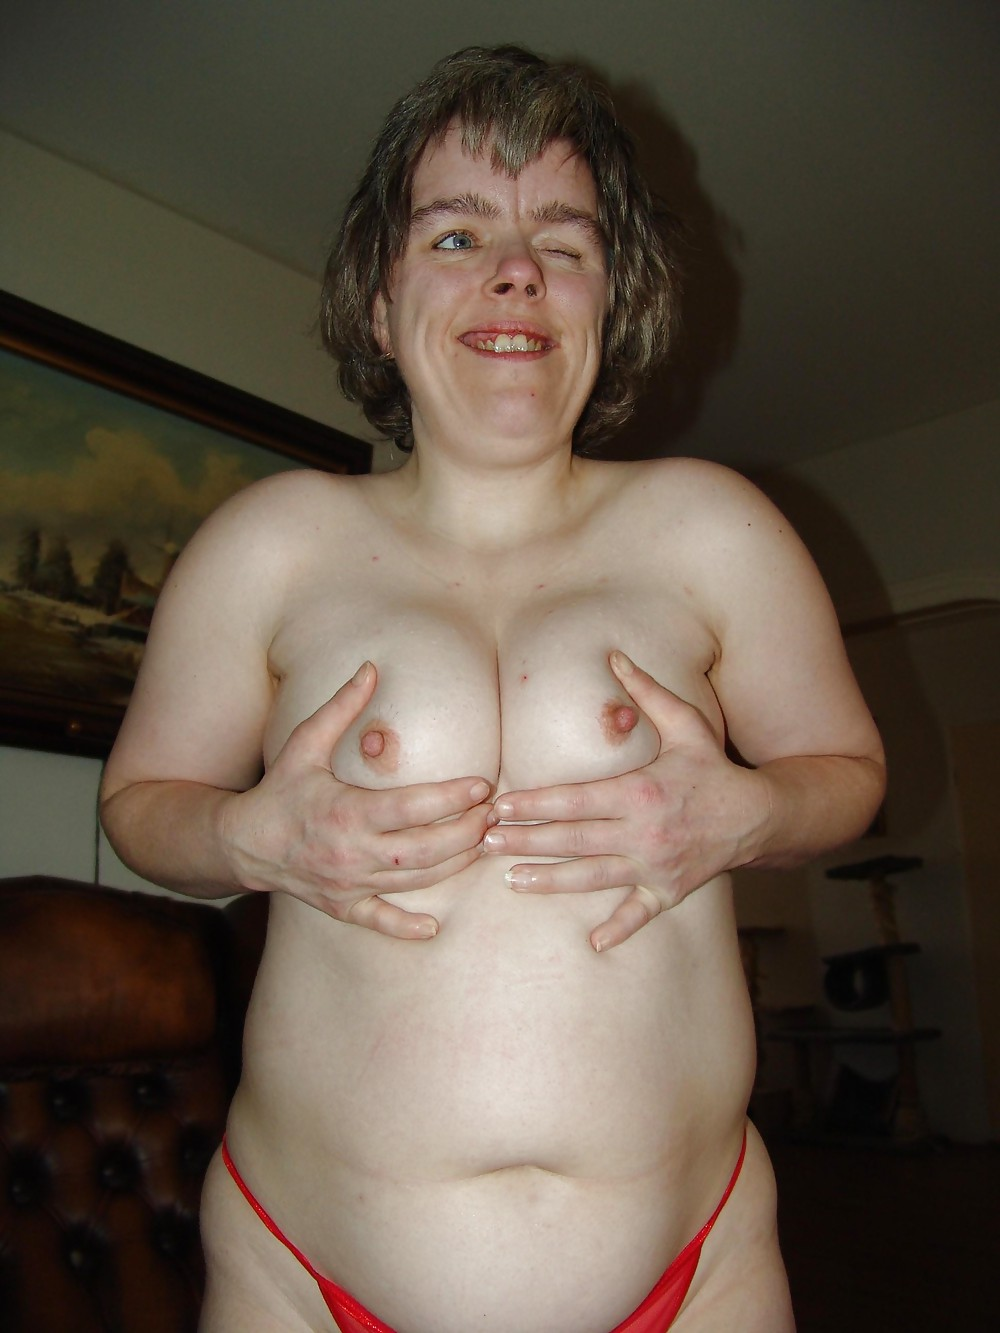 Down syndrome woman nude pics, salt lick bar-b-que austin